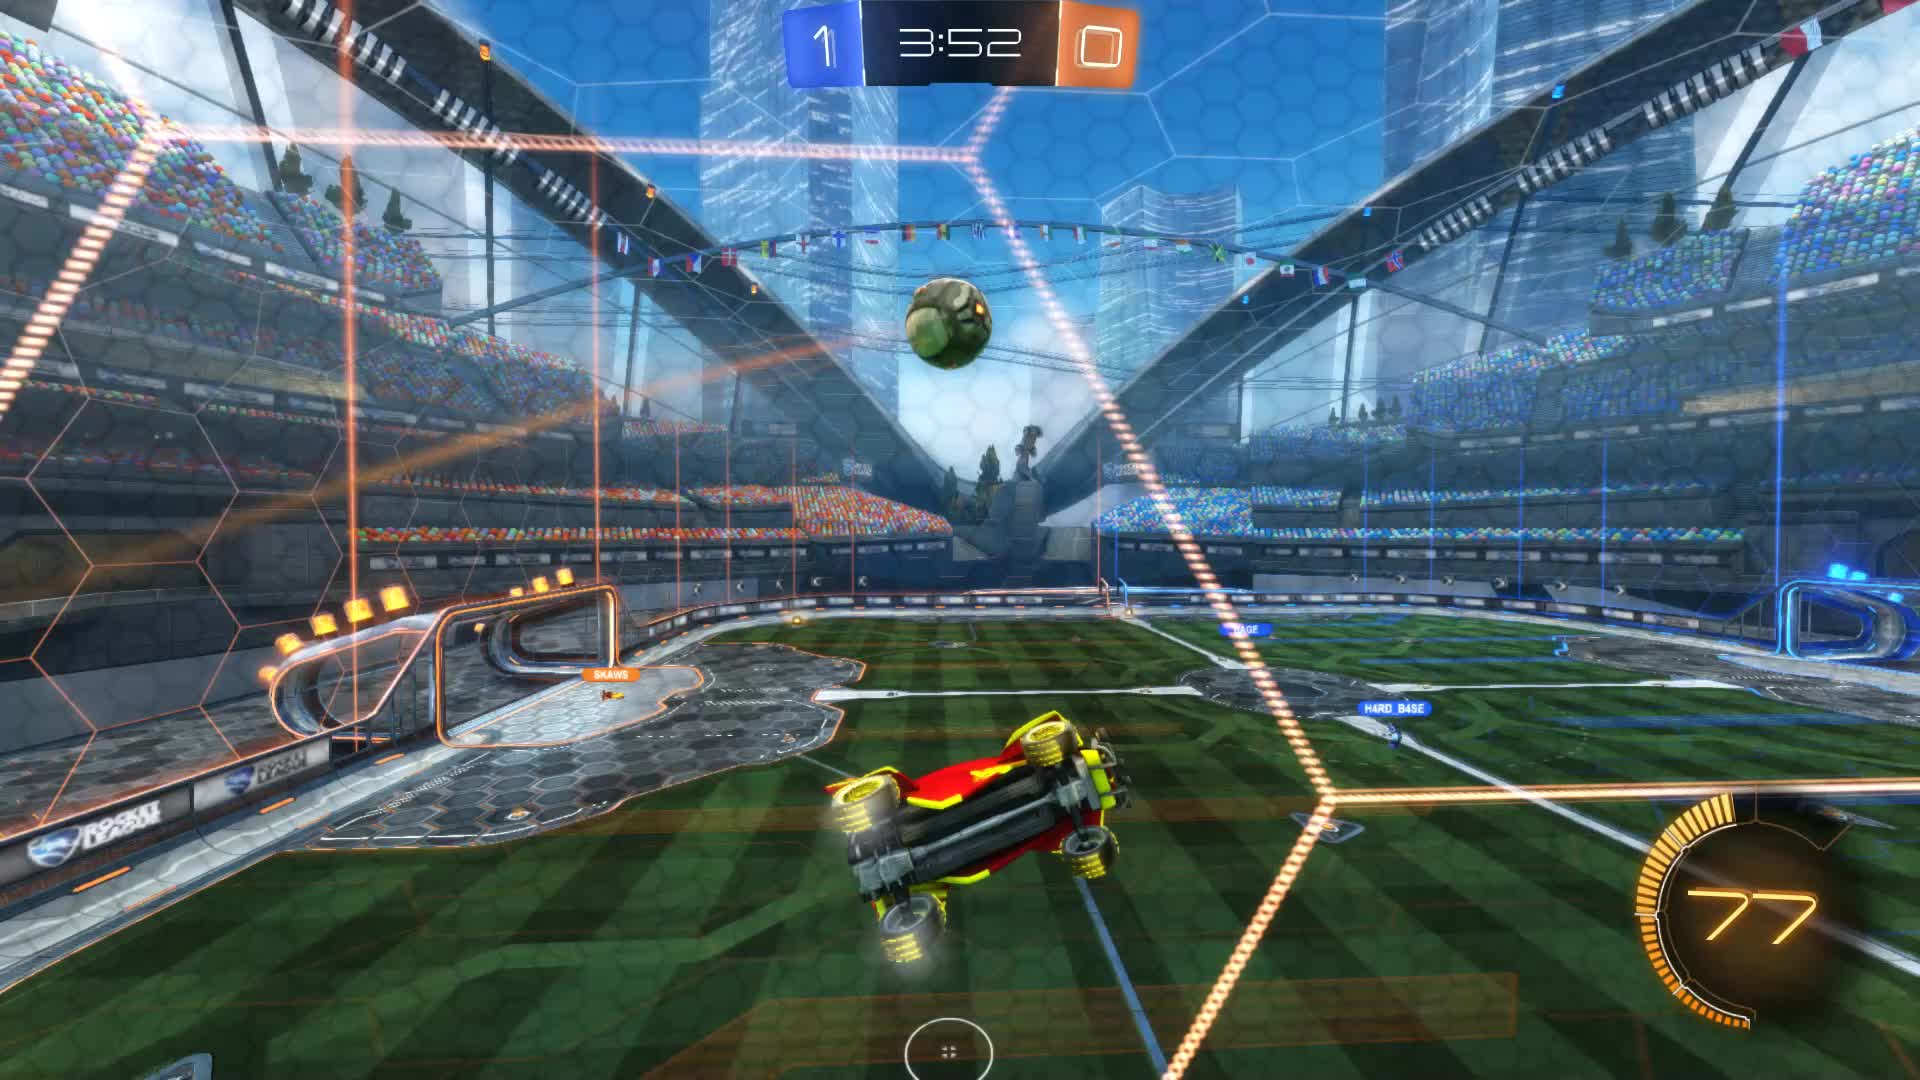 Gif Your Game, GifYourGame, Goal, JAG, Rocket League, RocketLeague, Goal 2: JAG GIFs